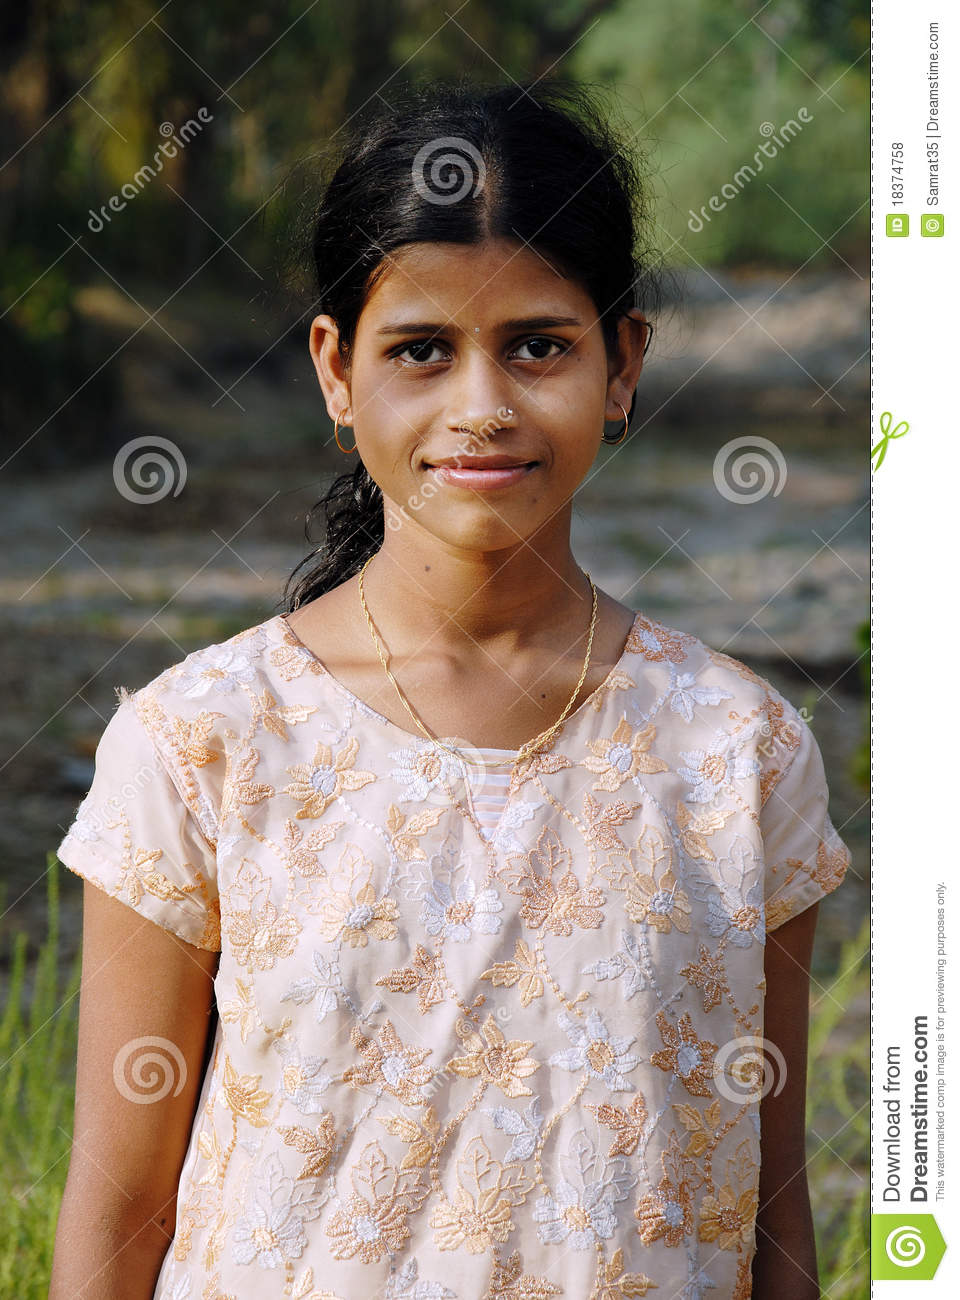 Adolescents Girl In Rural India Editorial Stock Photo -2949